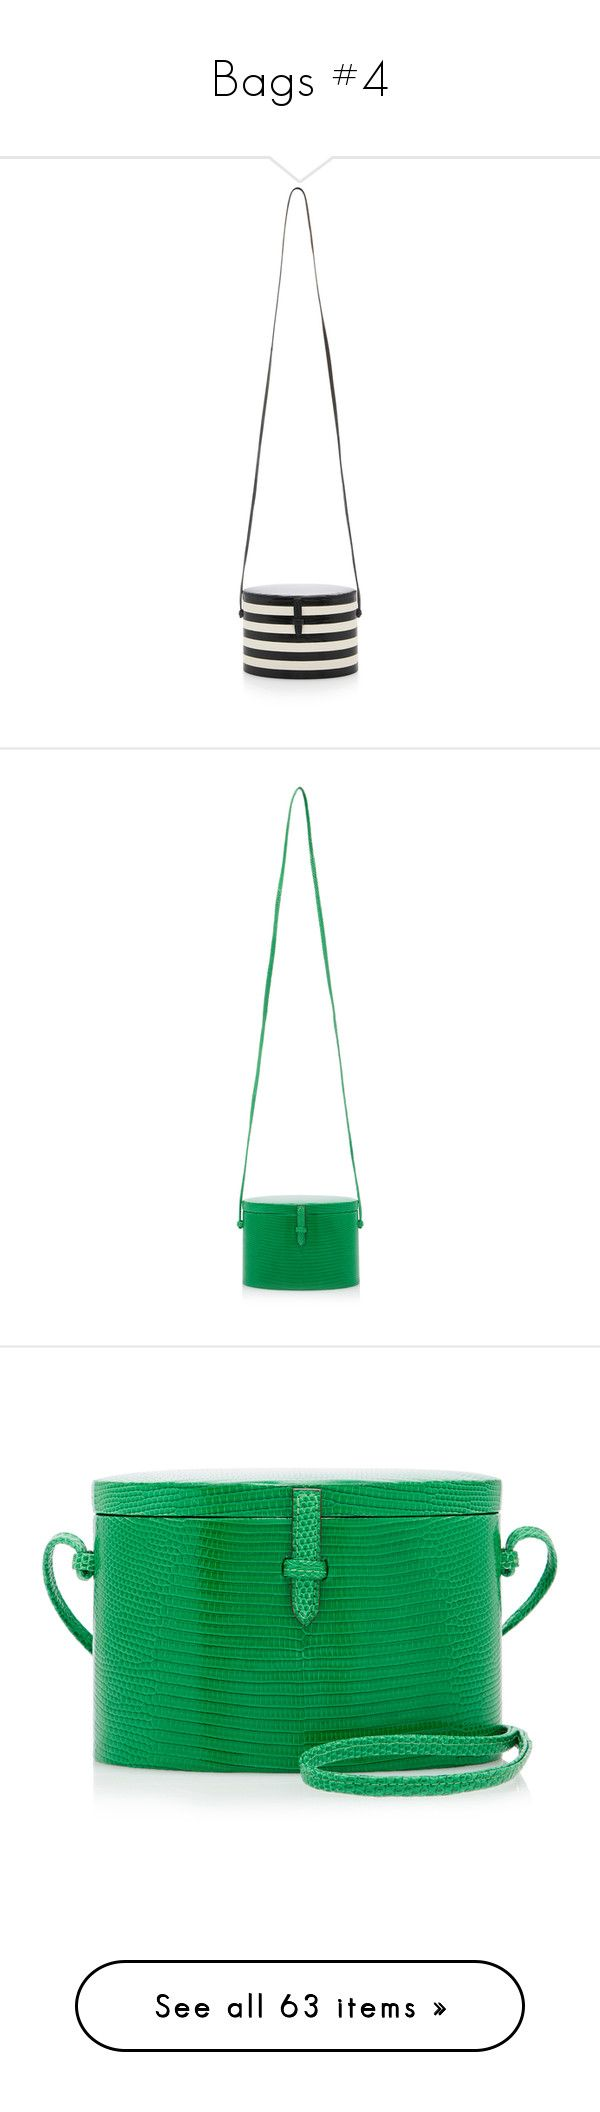 """Bags #4"" by lajudy ❤ liked on Polyvore featuring bags, handbags, shoulder bags, white black, balenciaga shoulder bag, genuine leather handbags, black and white leather handbags, leather shoulder handbags, black and white handbags and green"